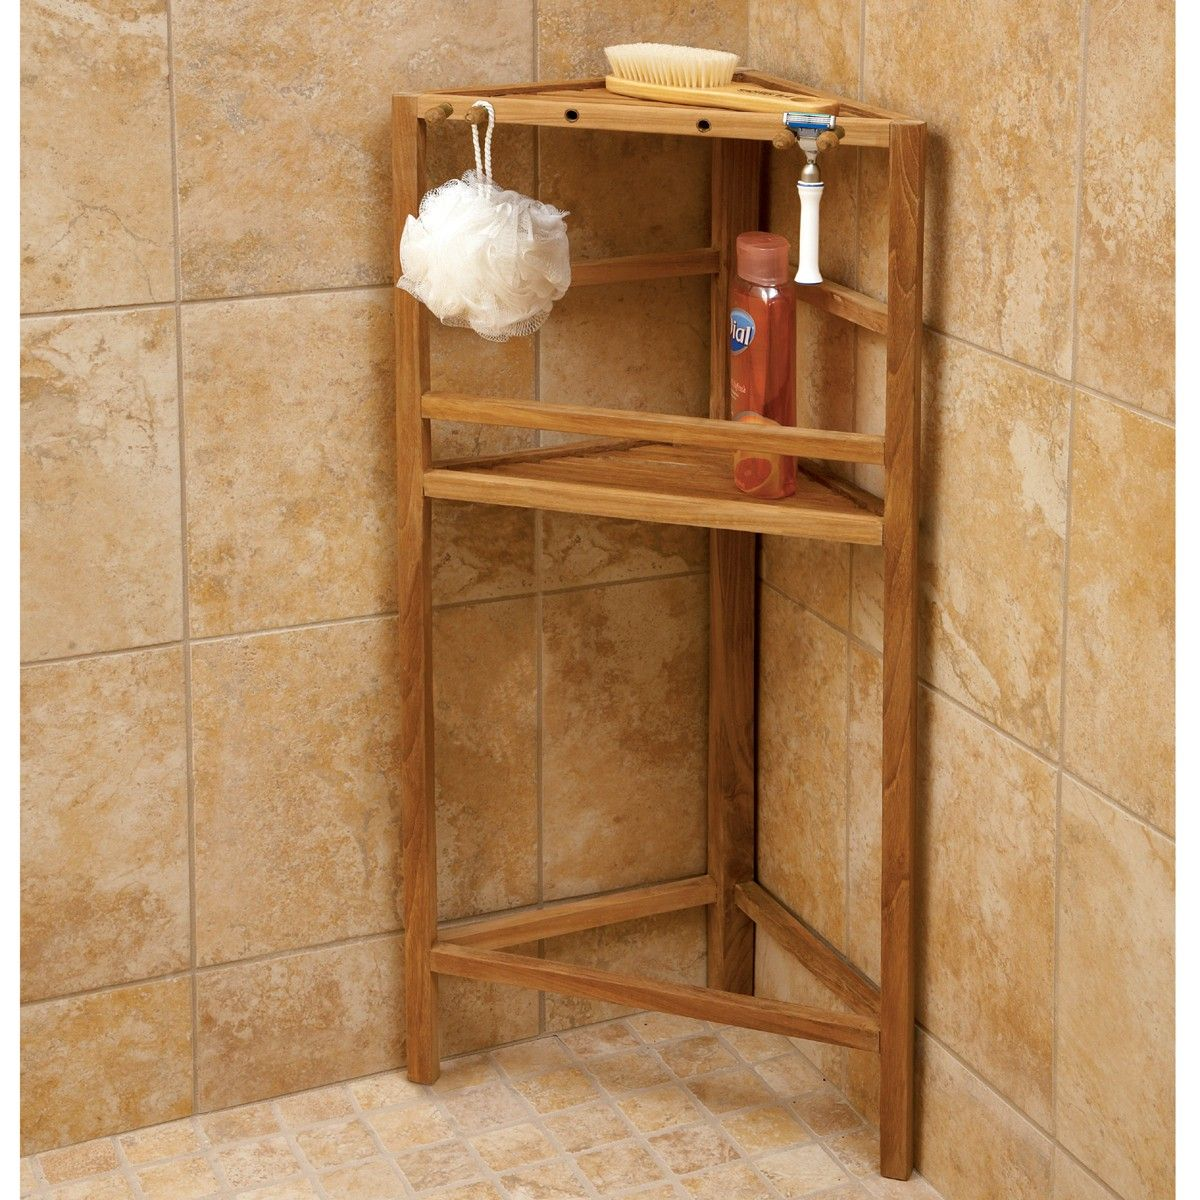 Teak Shower Shelving With Images